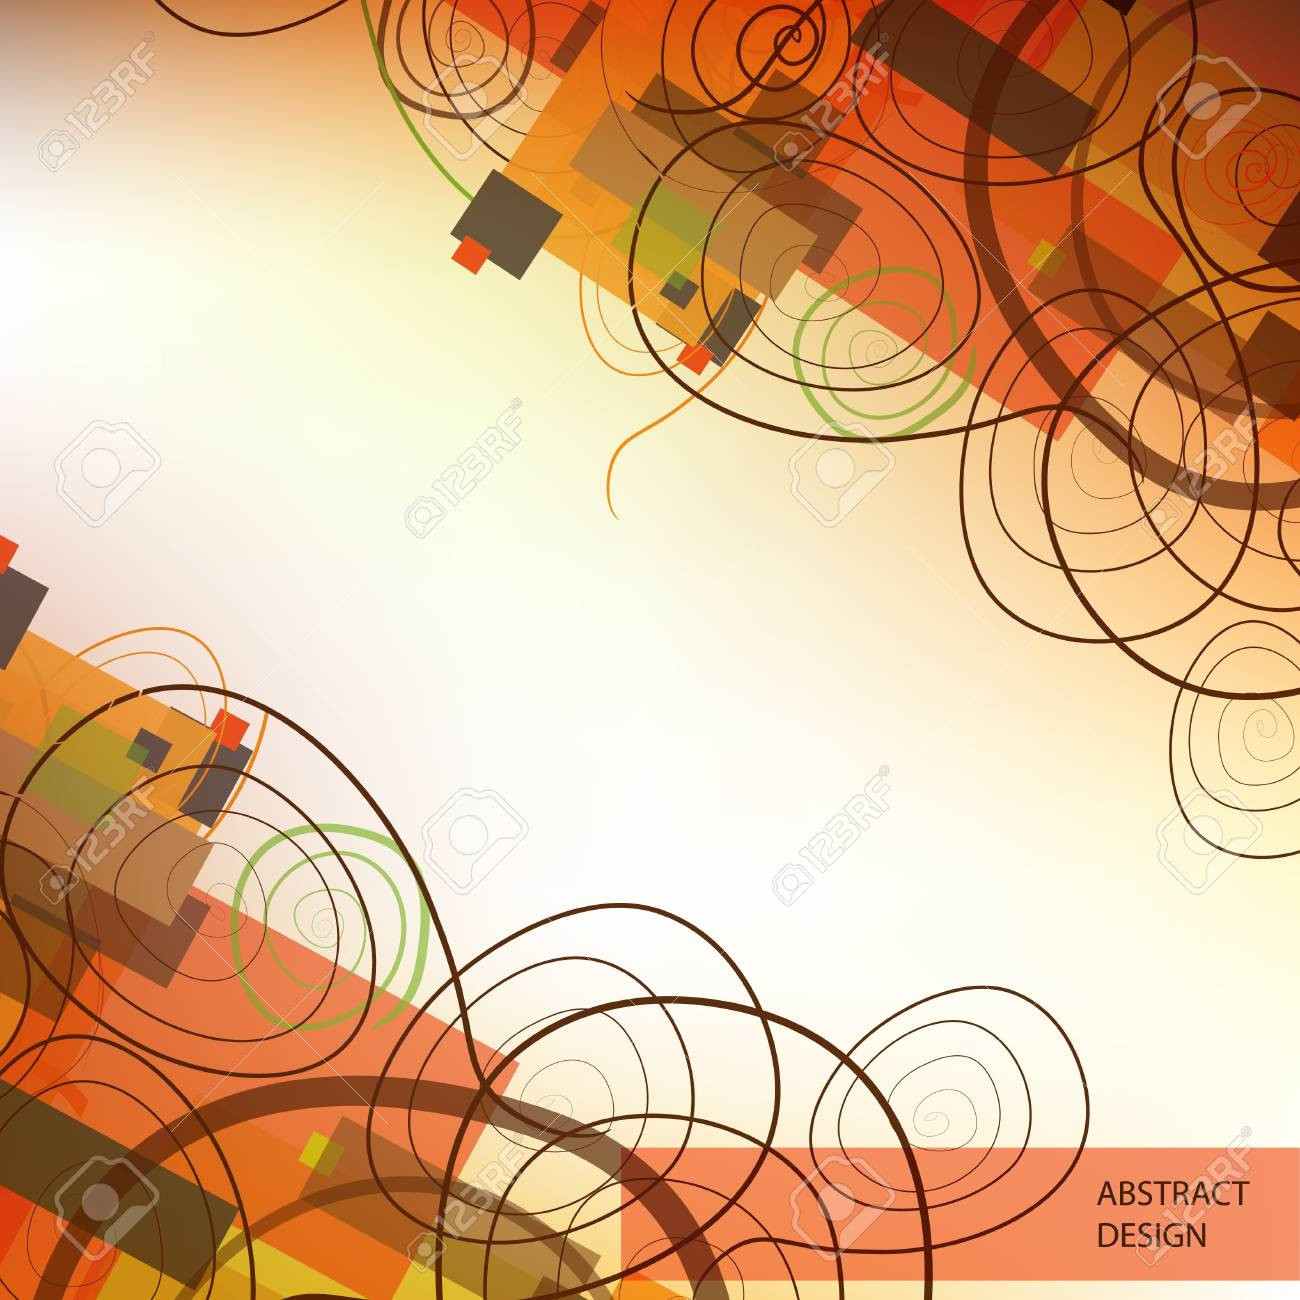 Abstract background with swirls and colorful rectangles. Stock Vector - 9623860